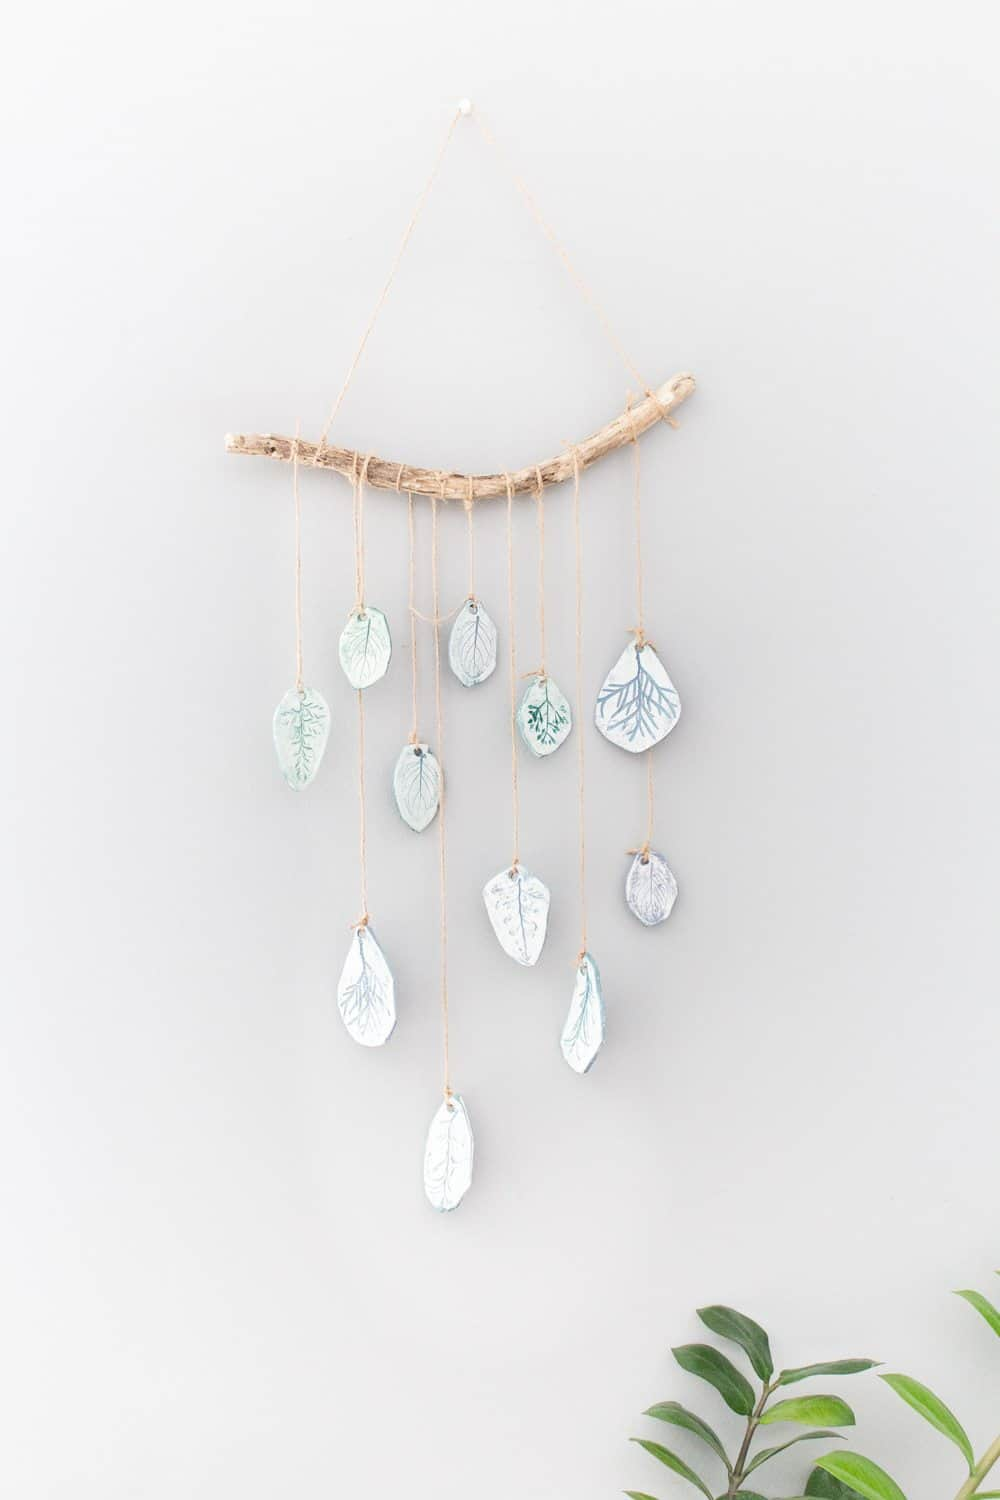 Clay wind chime wall hanging craft